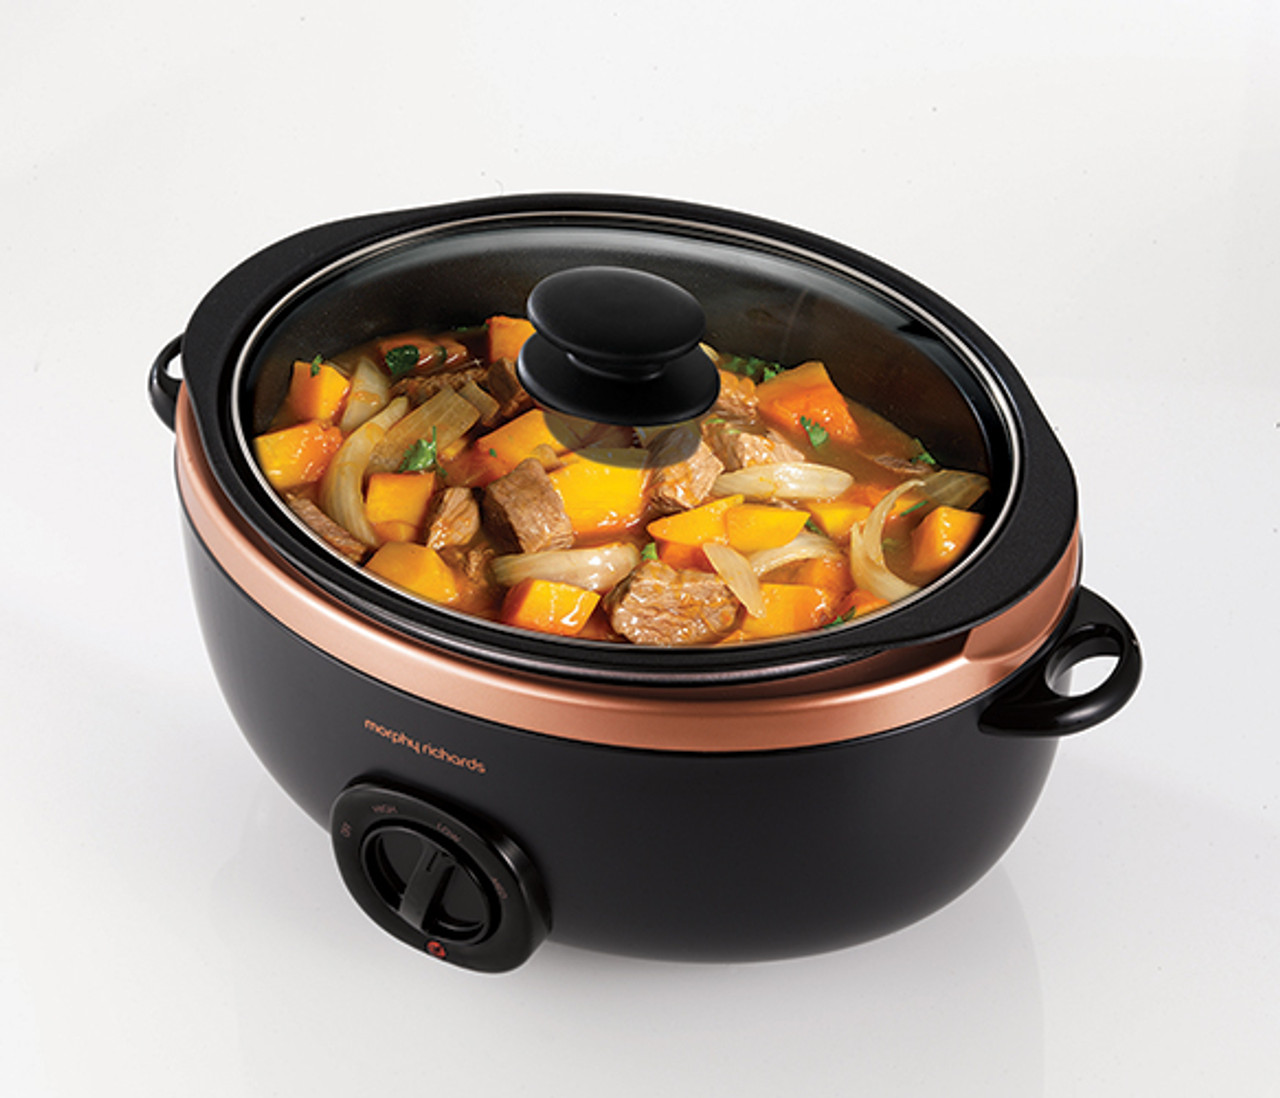 Morphy Richards 461016 3 Setting Sear and Stew 6.5L Slow Cooker - Rose Gold